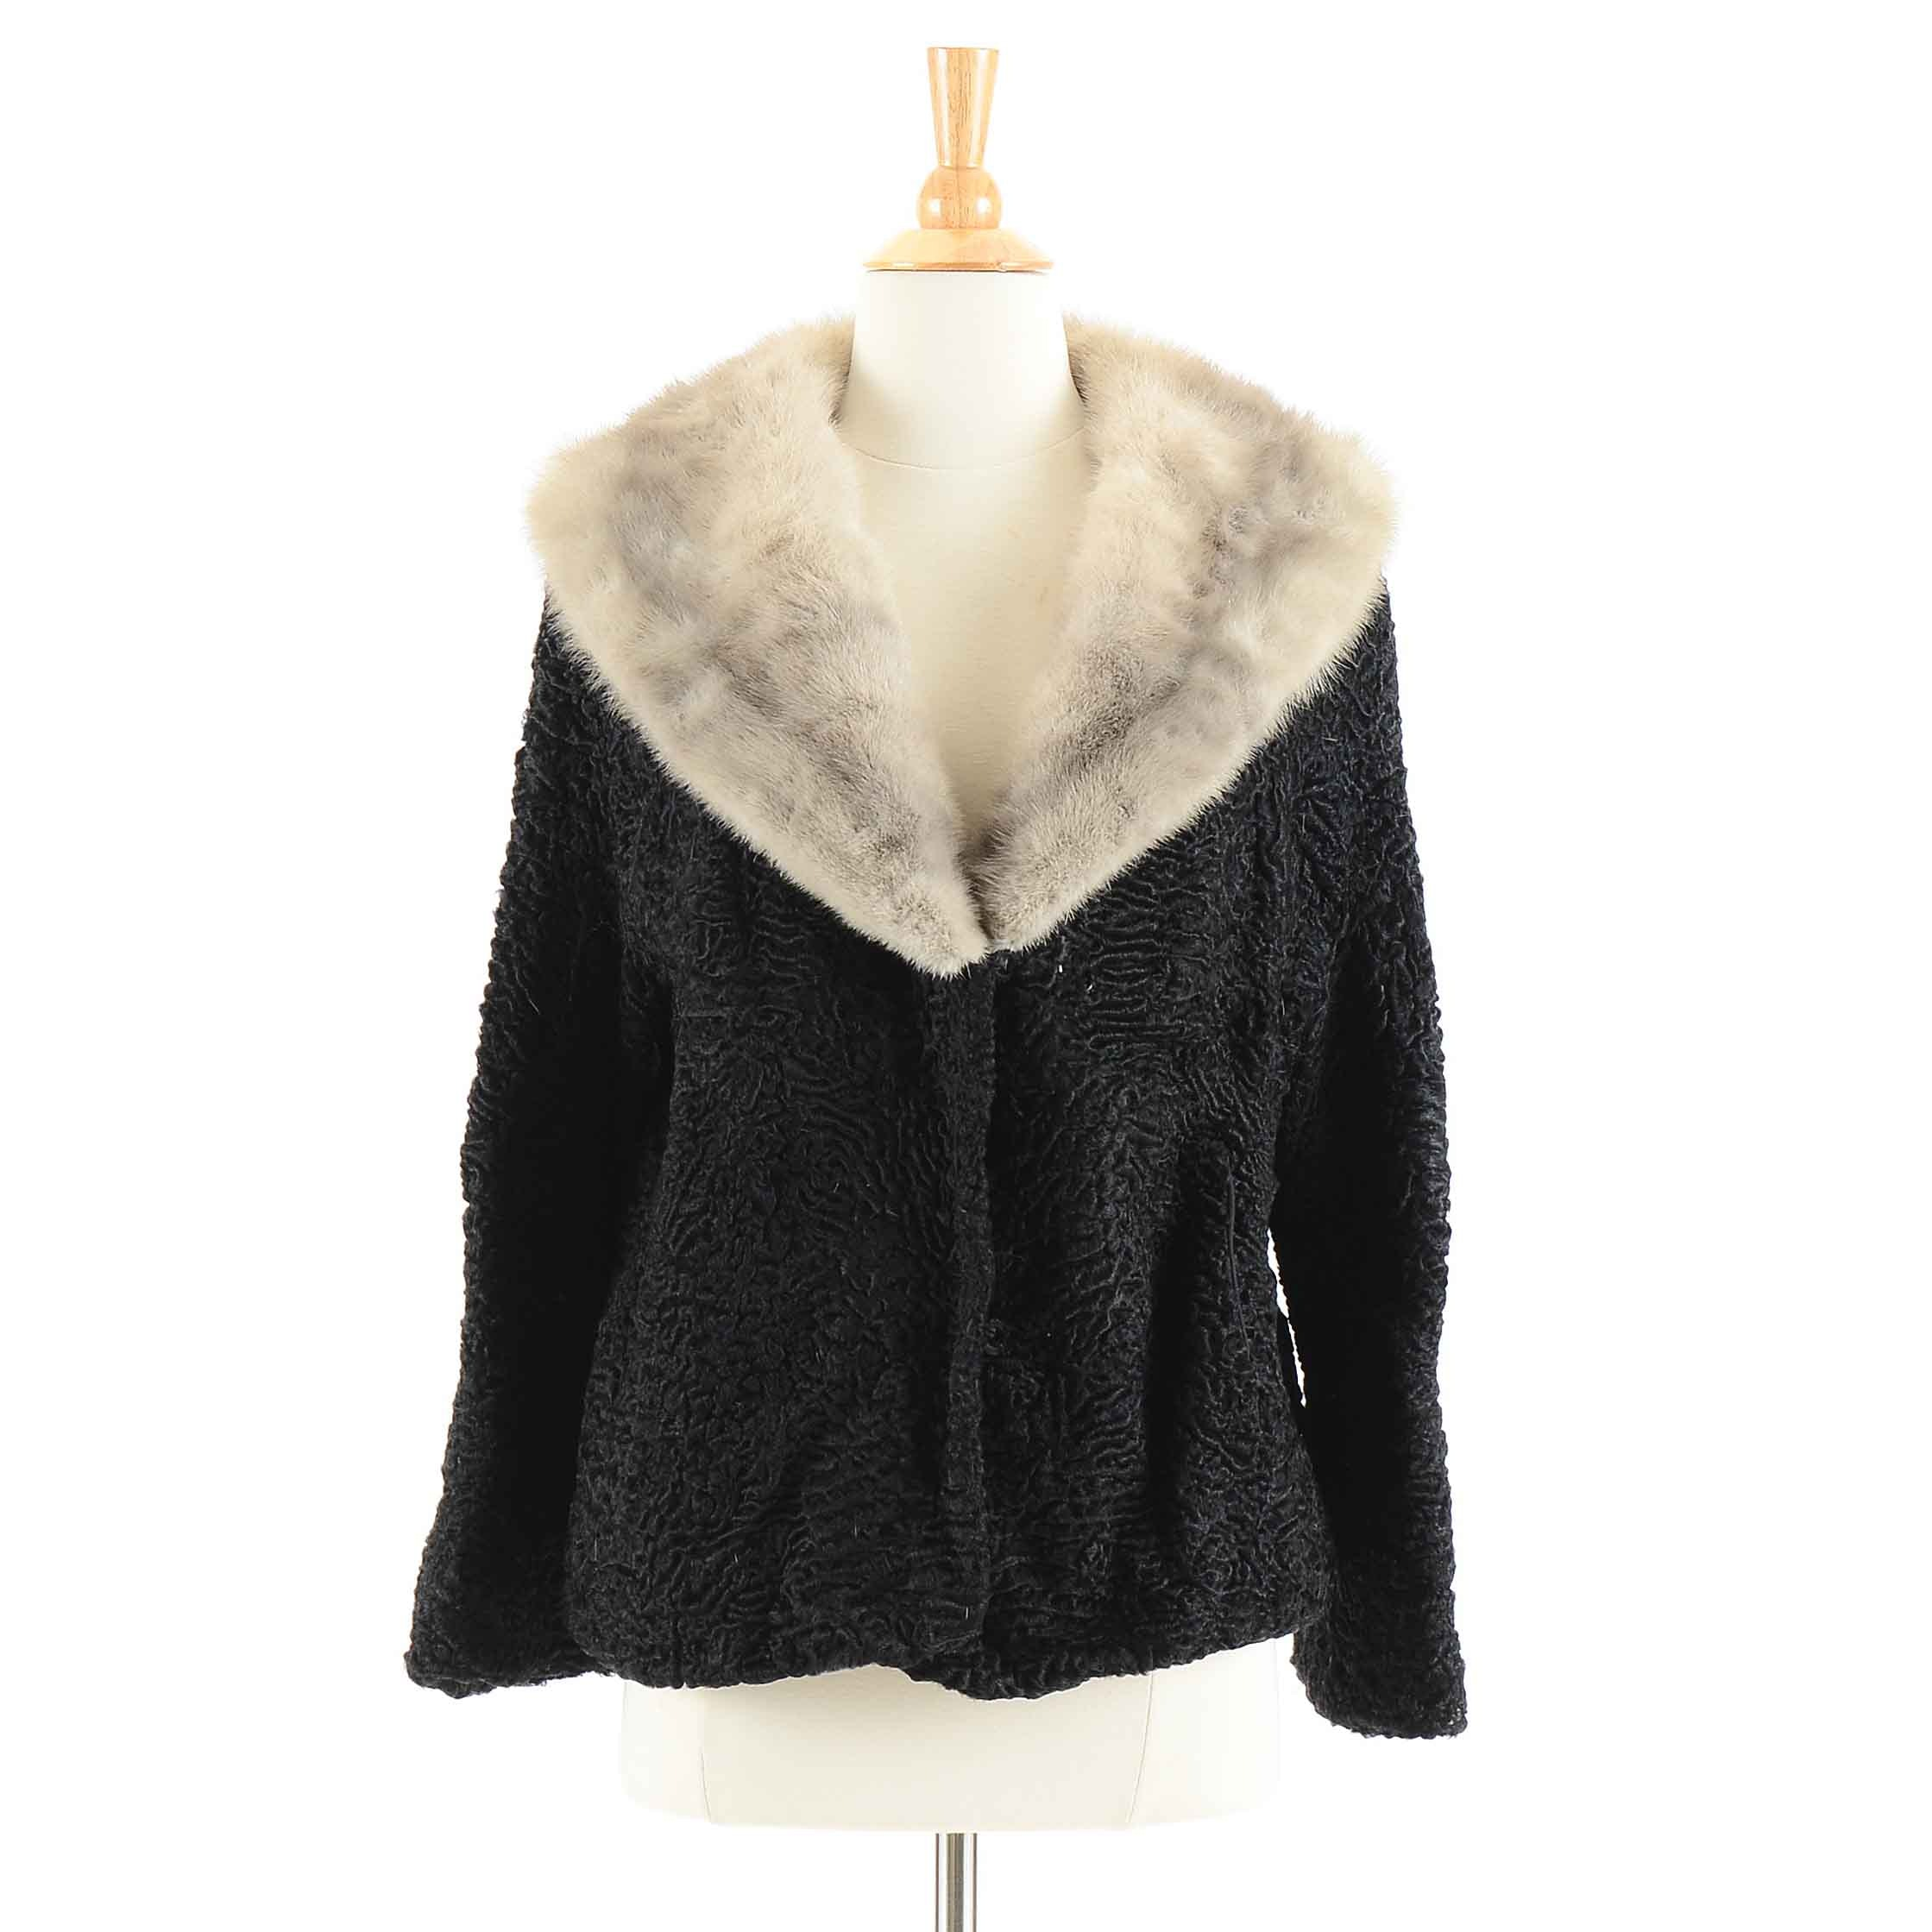 Vintage Persian Lamb Jacket with Mink Fur Collar